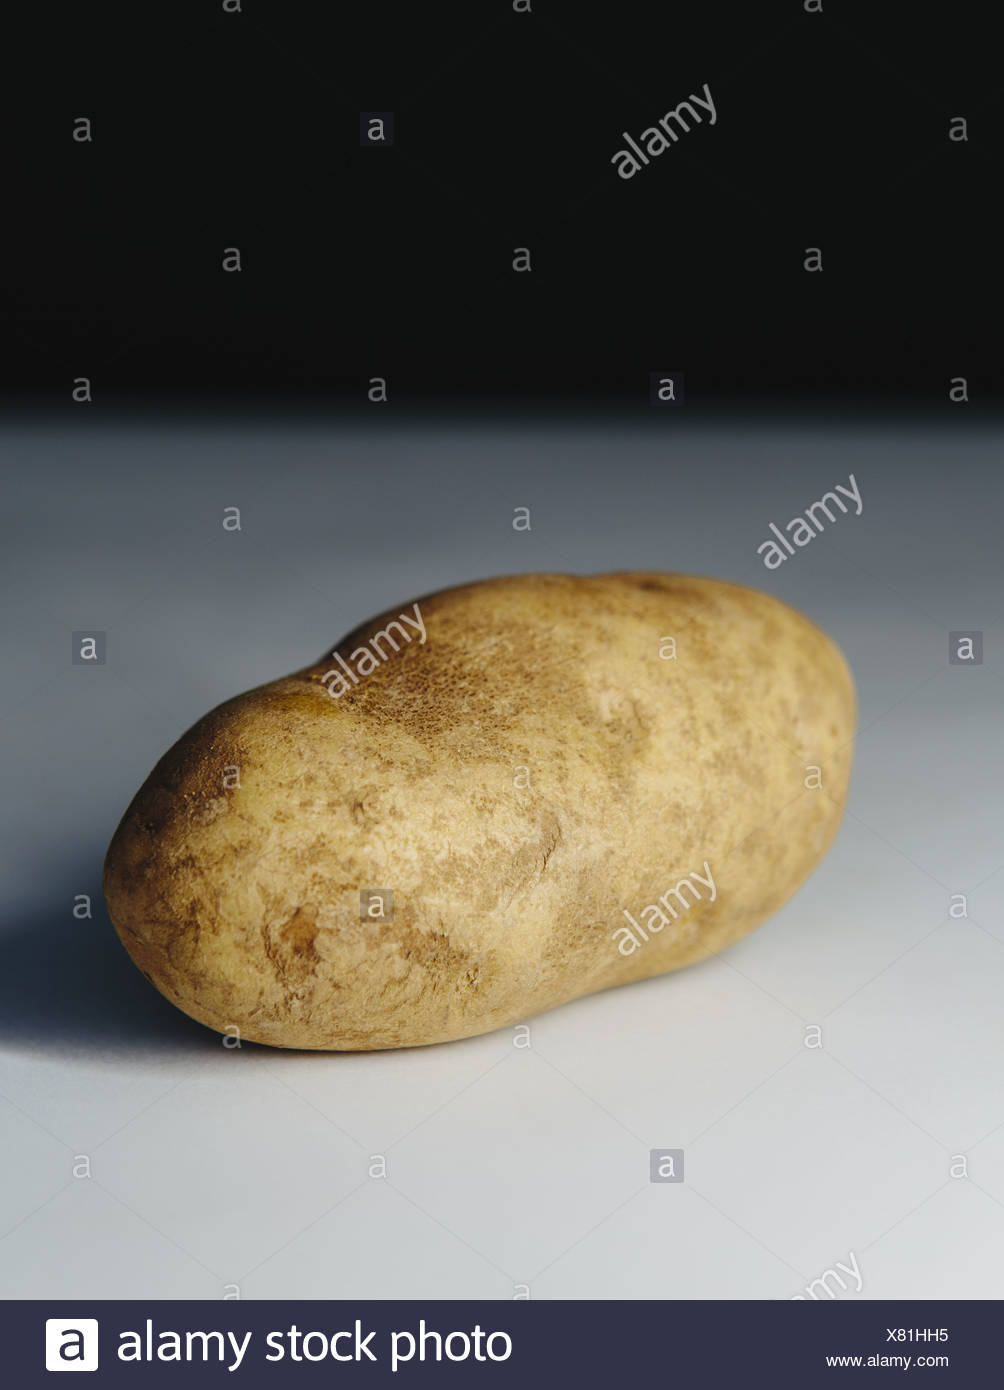 A scrubbed clean organic russet potato. - Stock Image